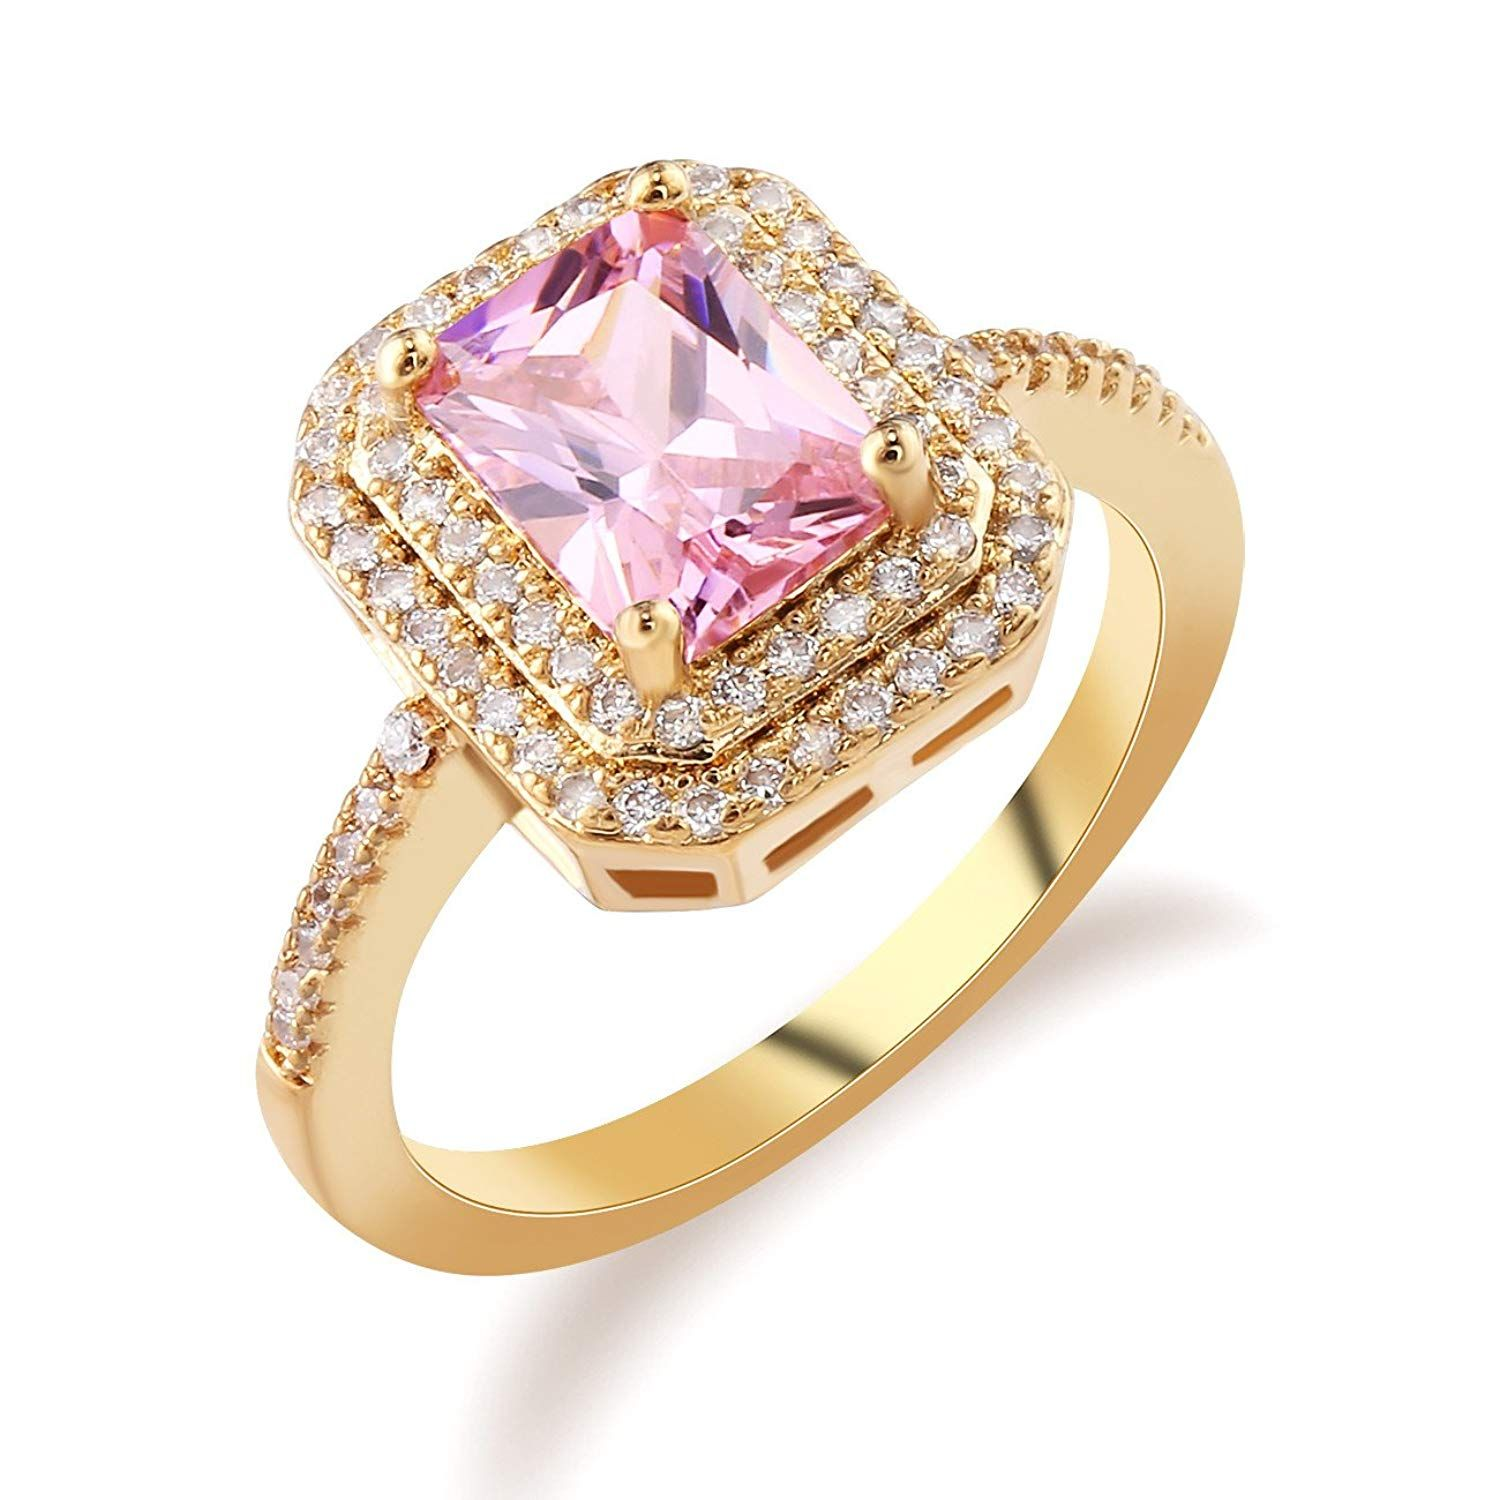 390416fce GULICX Women's Ring with Pink Stone Cubic Zirconia CZ Gold Tone Wedding  Party Gift ** Wonderful of your presence to drop by to visit our picture.